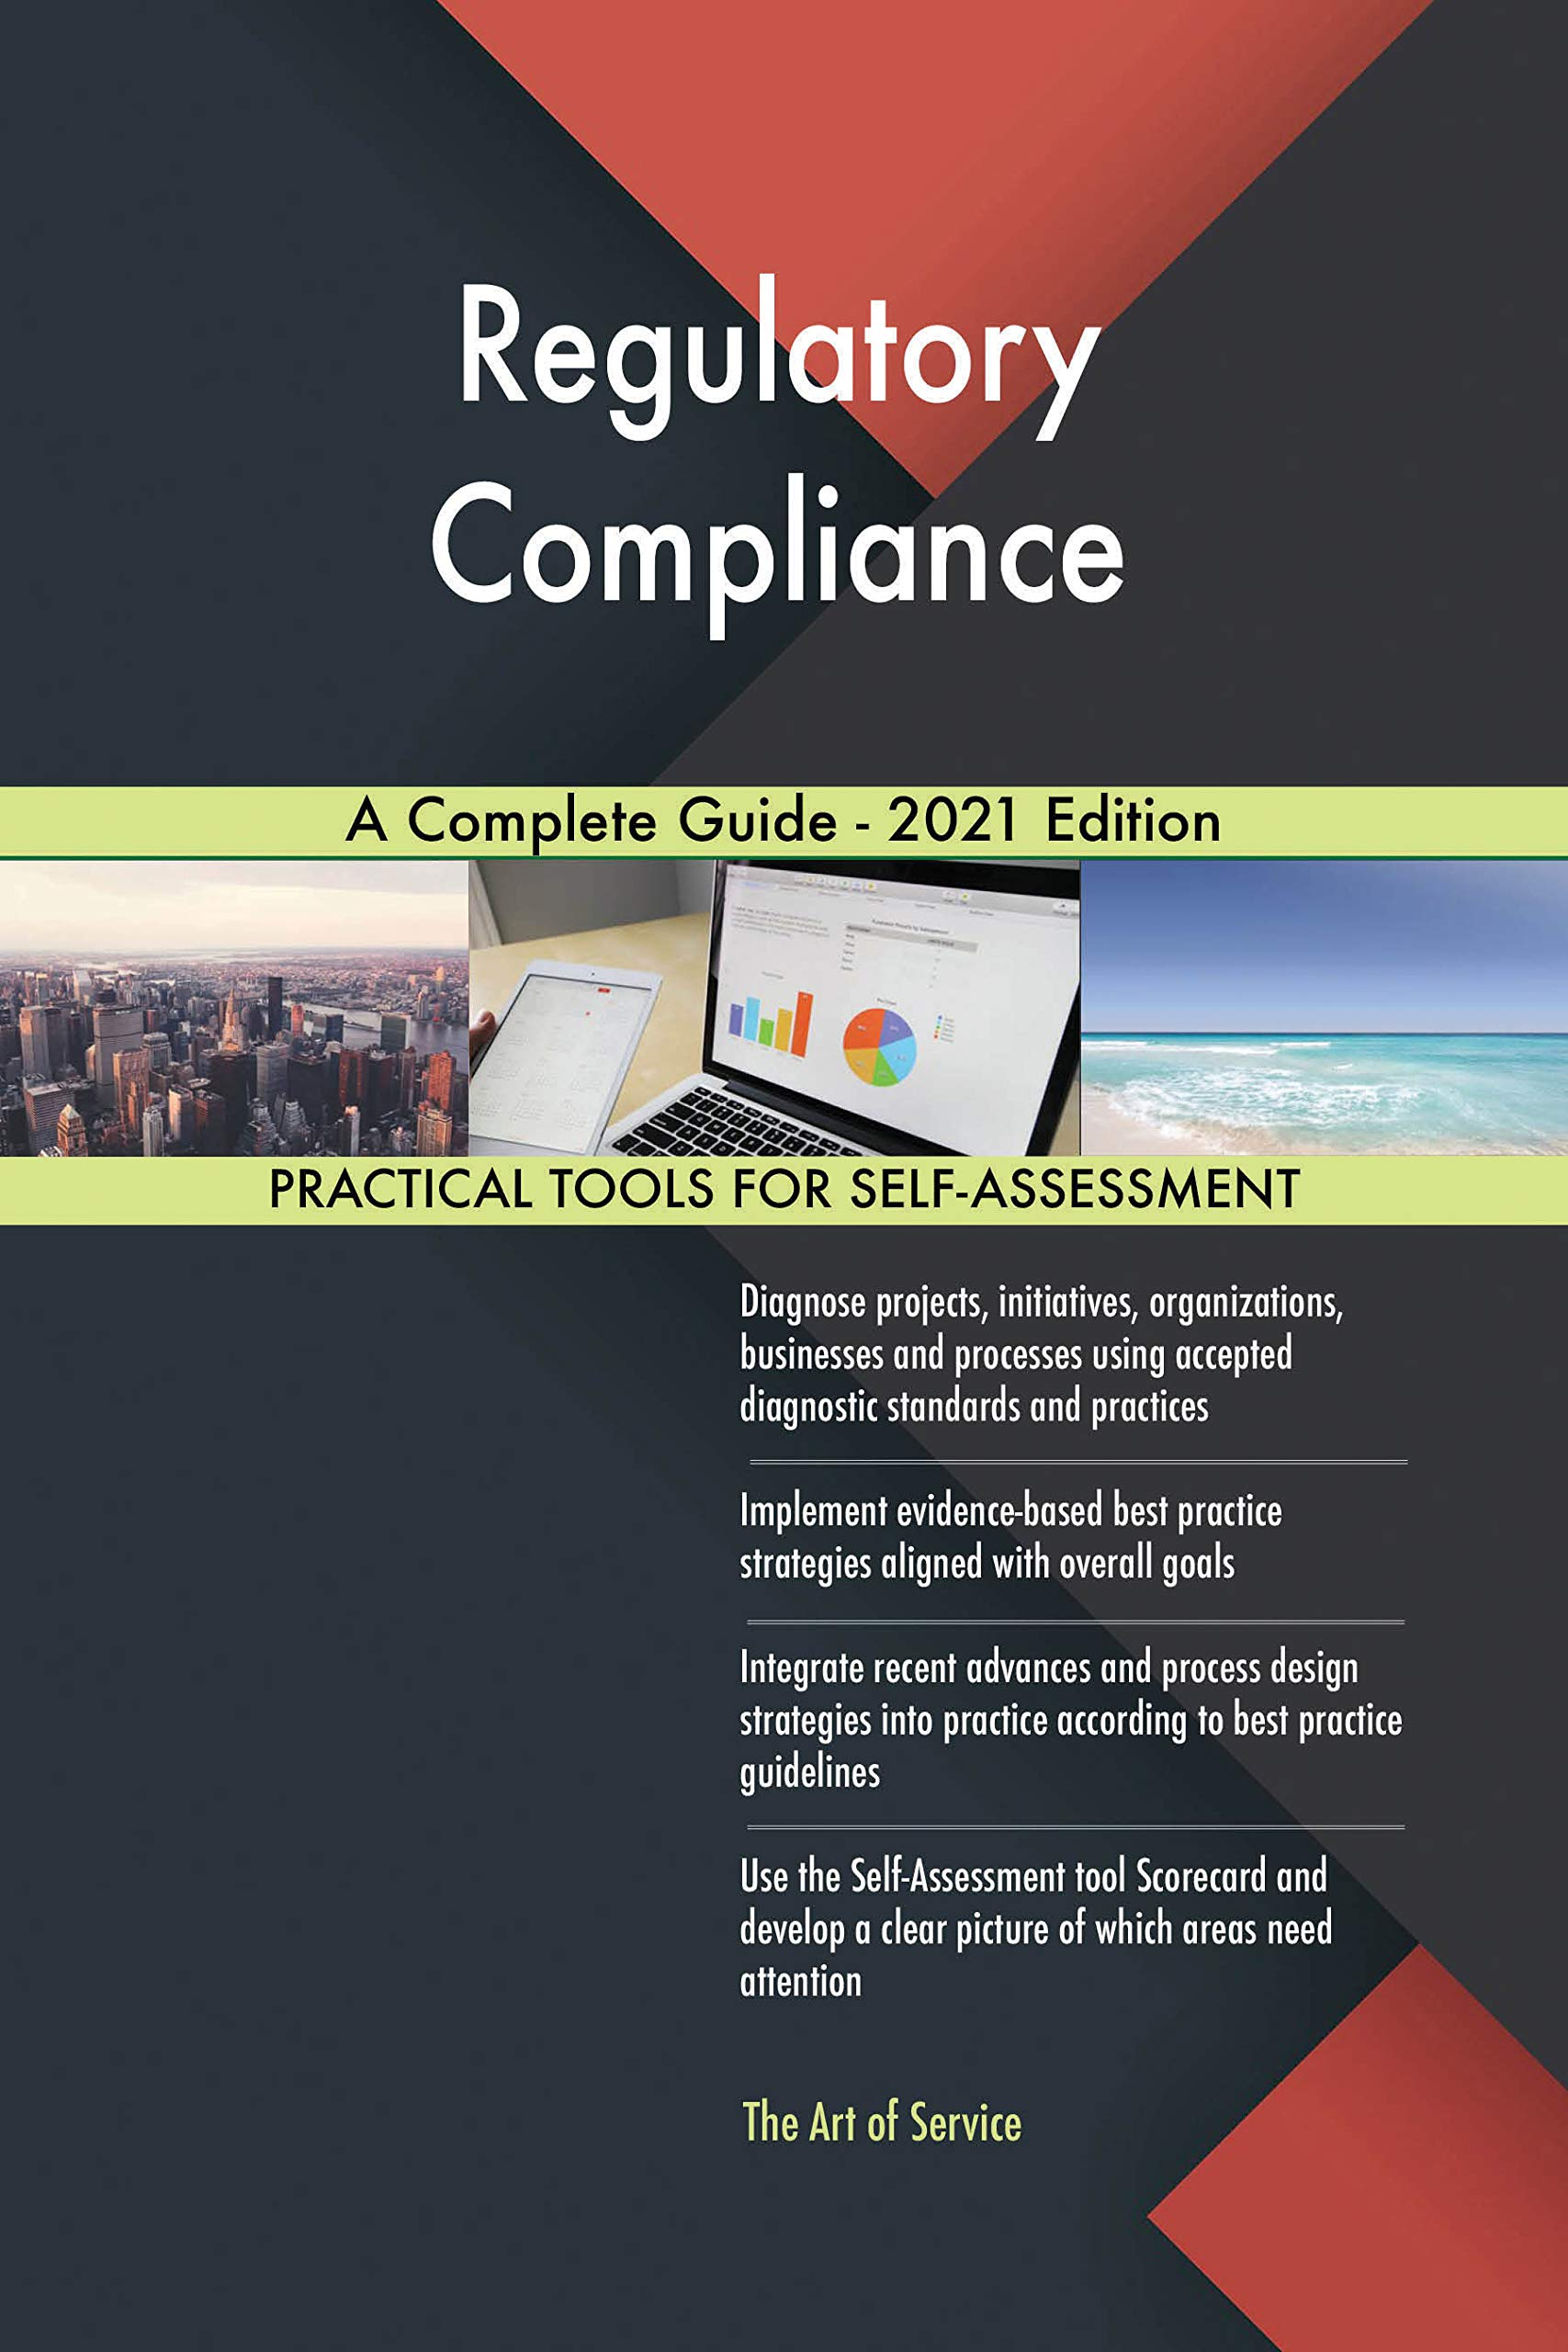 Regulatory Compliance A Complete Guide - 2021 Edition